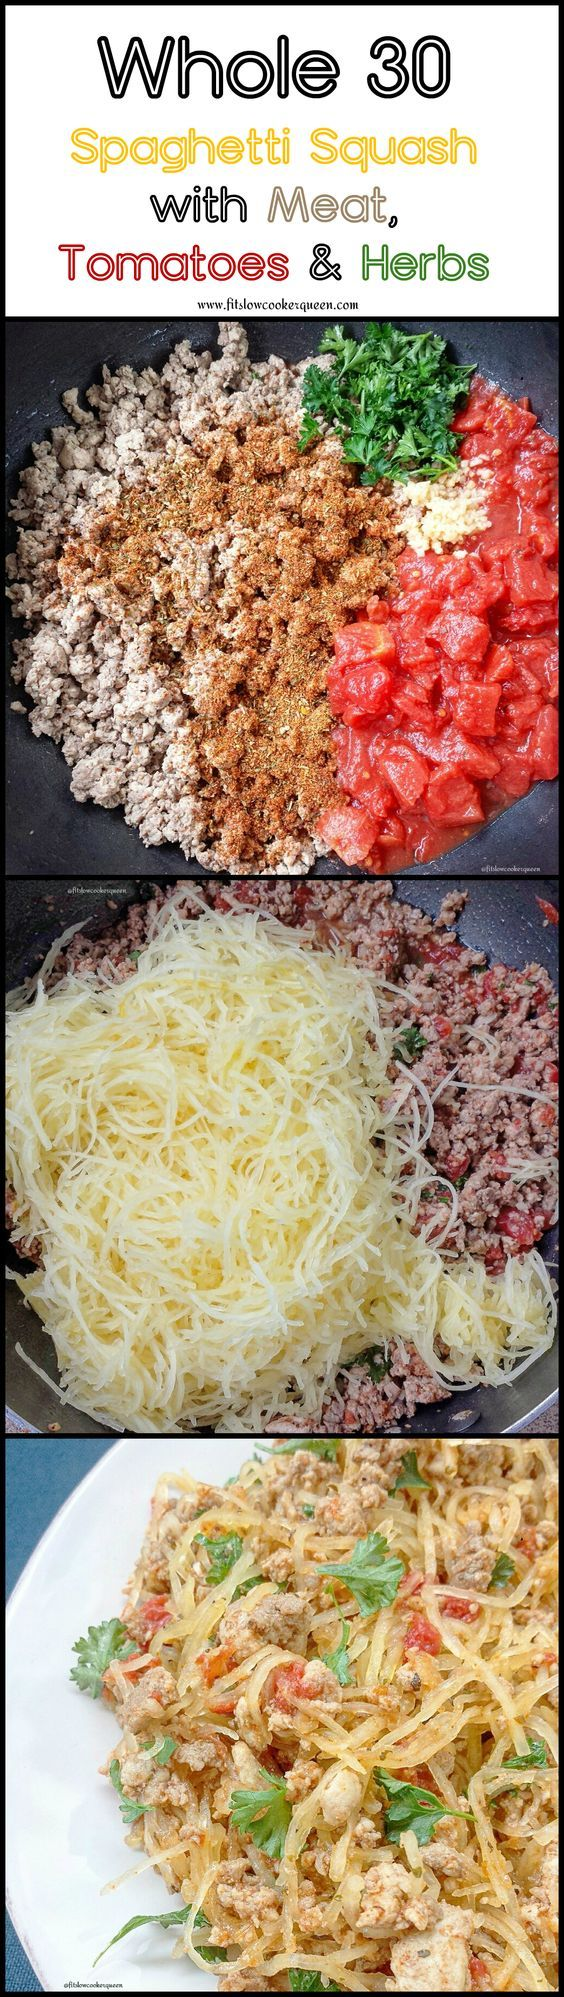 This healthy and simple whole 30 compliant one-pot meal consists of spaghetti squash, ground meat, diced tomatoes and fresh herbs. healthy slow cooker / crockpot recipe